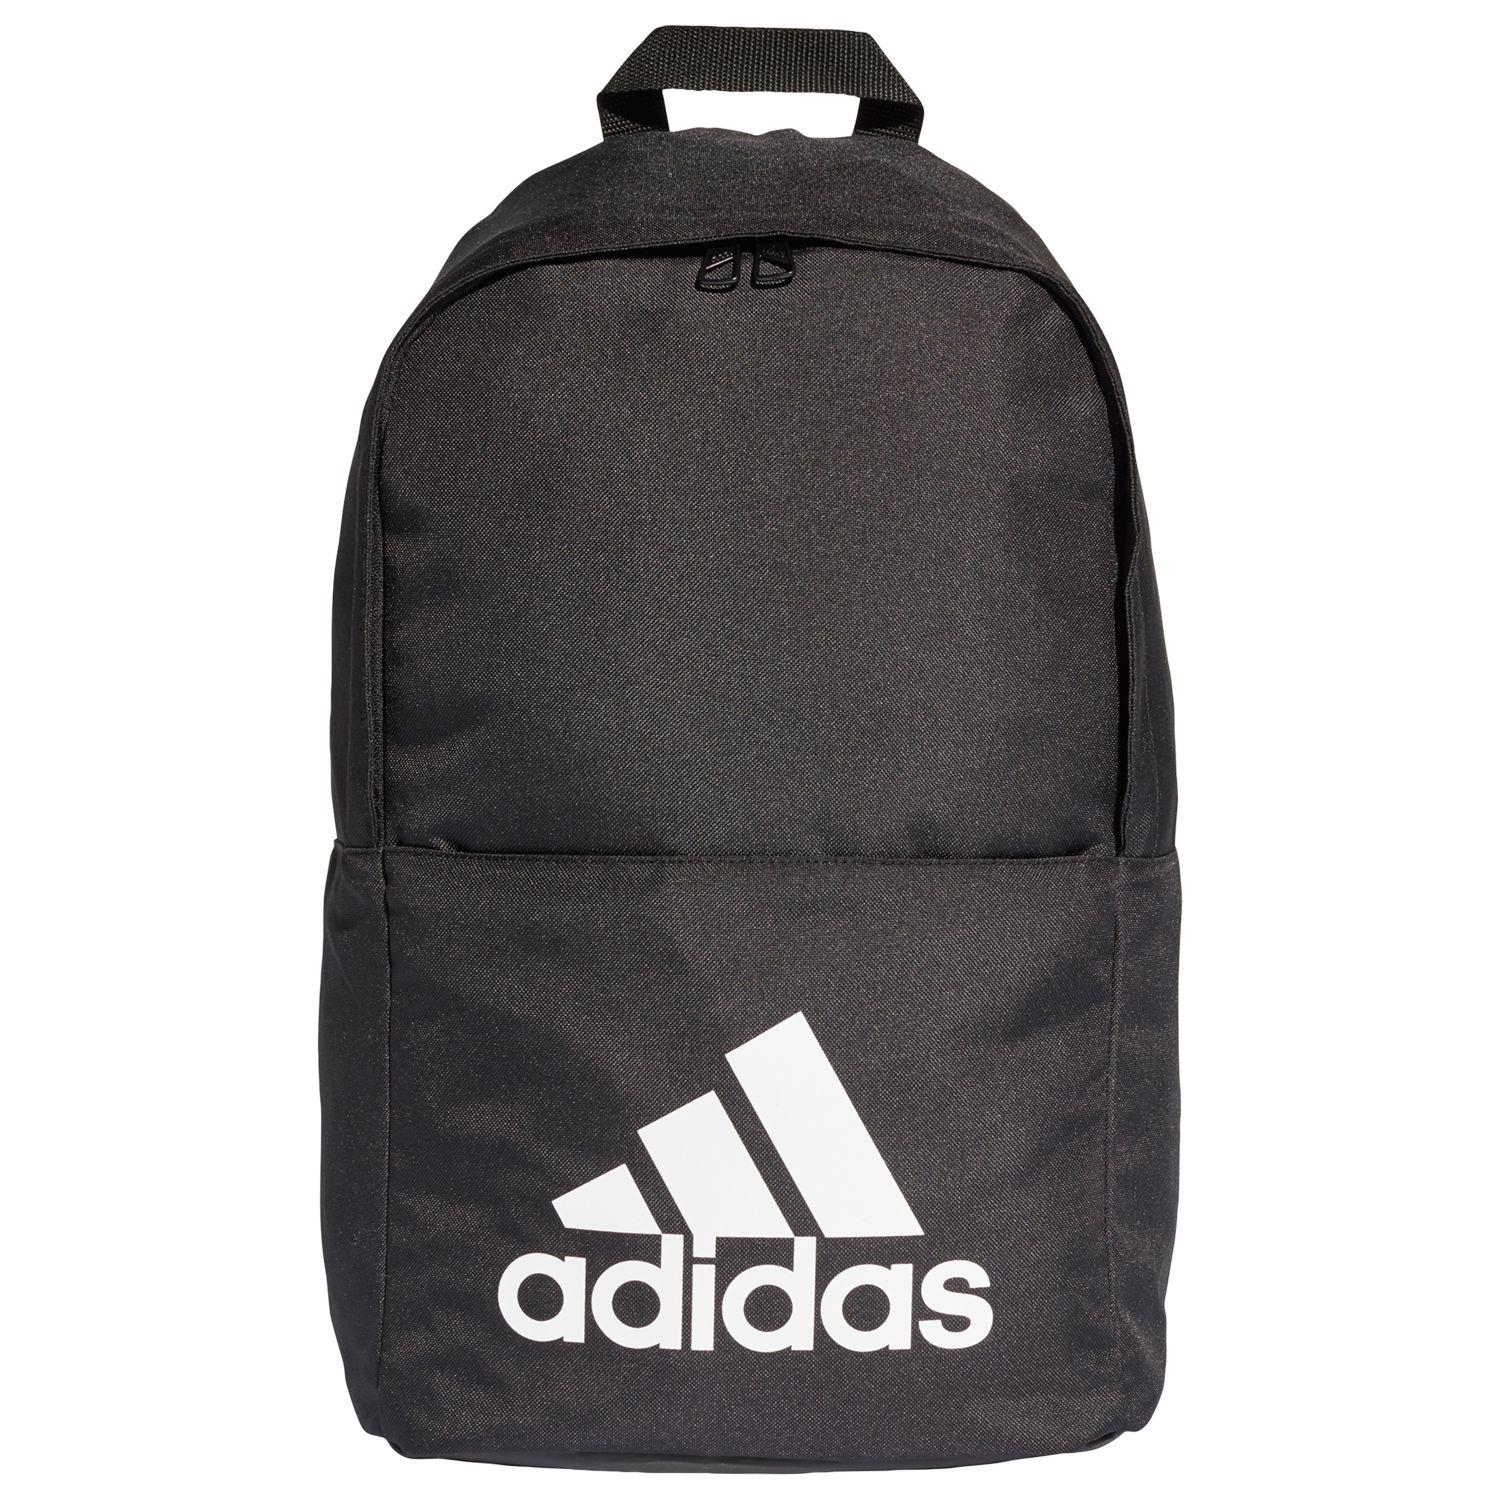 adidas Classic Backpack in Black for Men - Lyst 69f61c079fe84